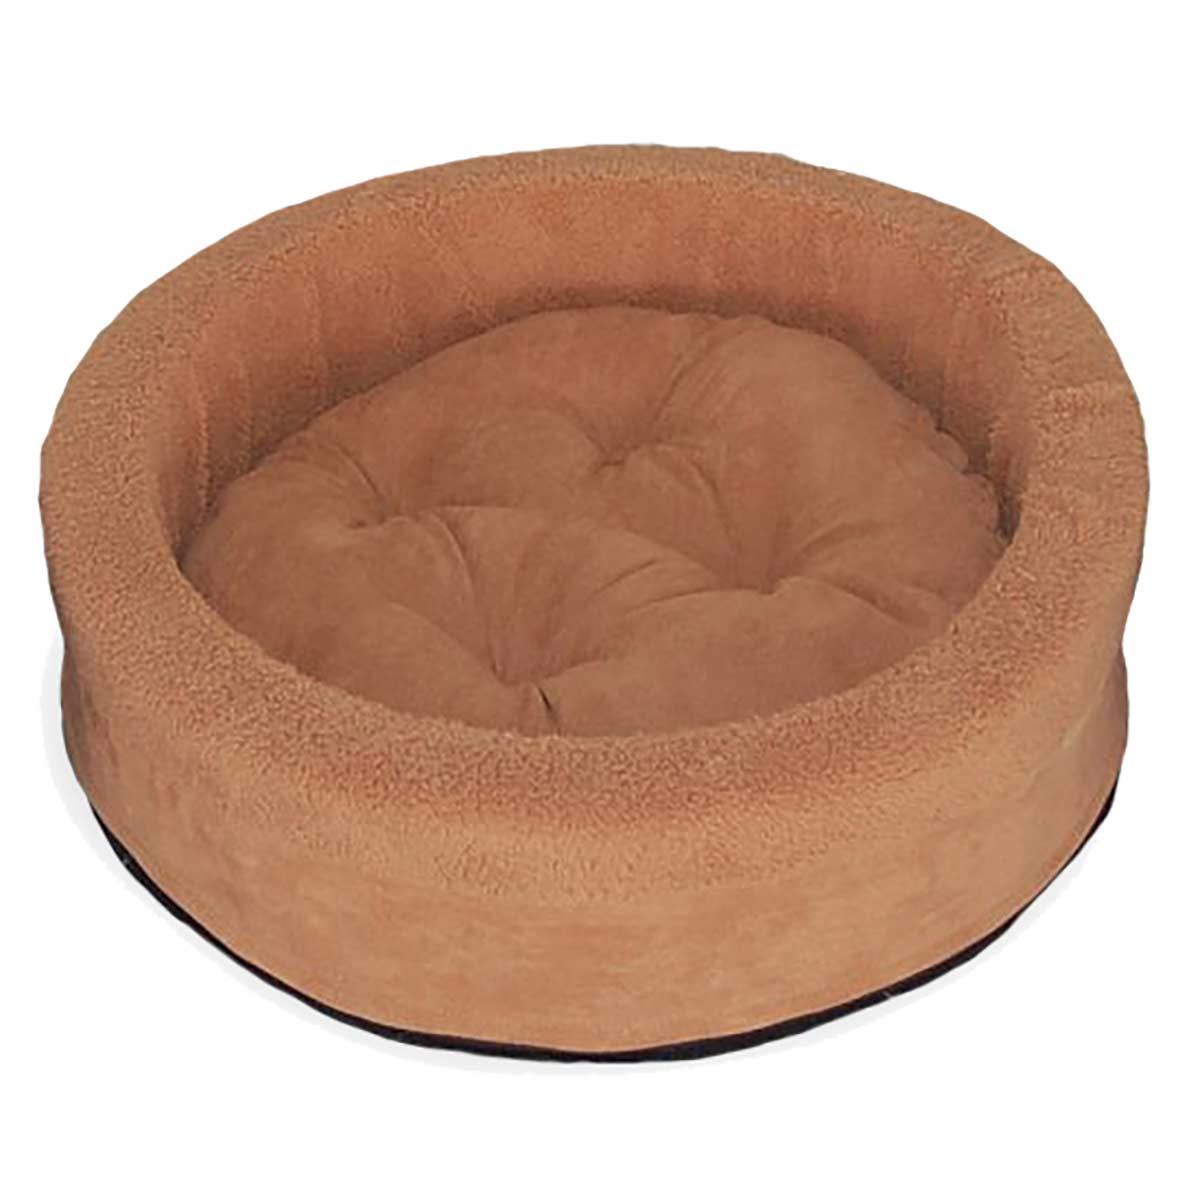 Furhaven Camel Snuggle Terry Cup Pet Bed at Ryan's Pet Supplies